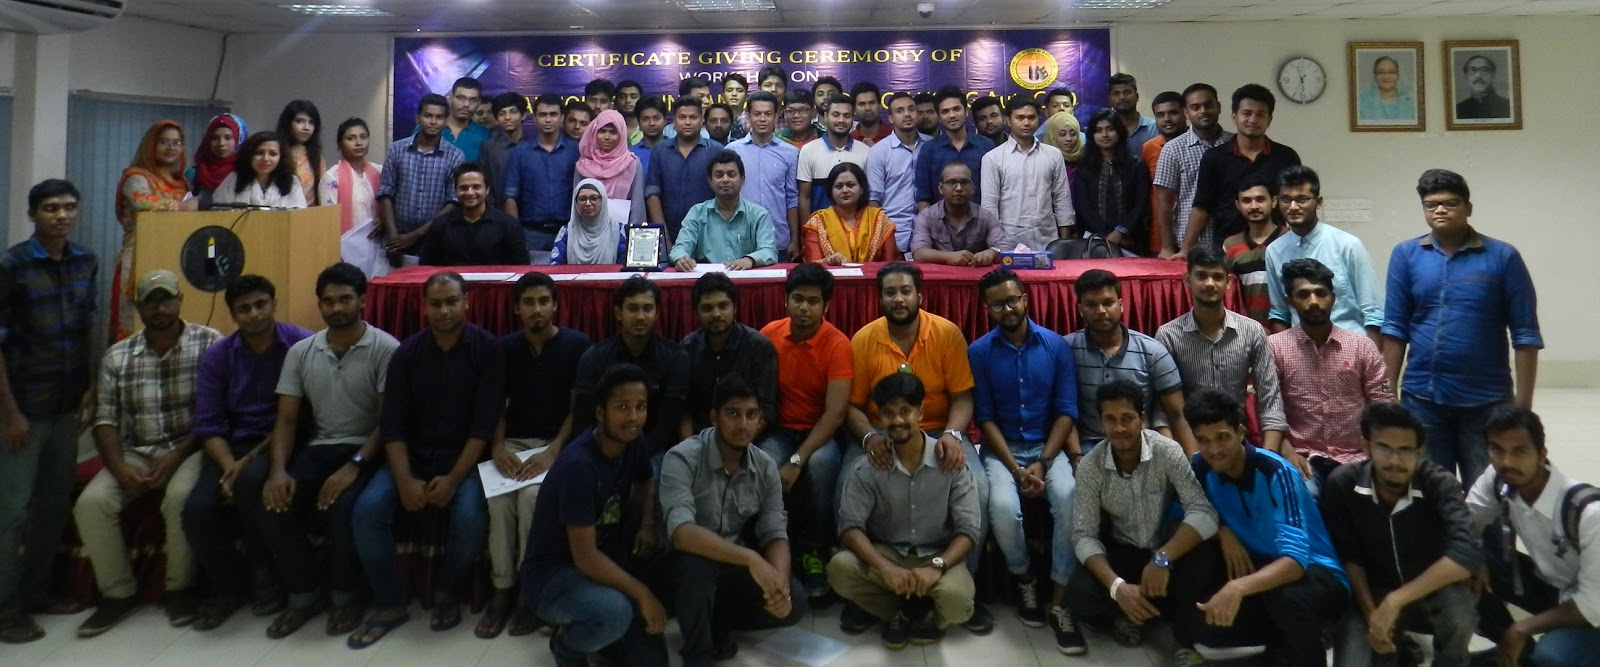 AutoCAD Workshop Certificate Giving Ceremony held at EEE Department of Southeast University